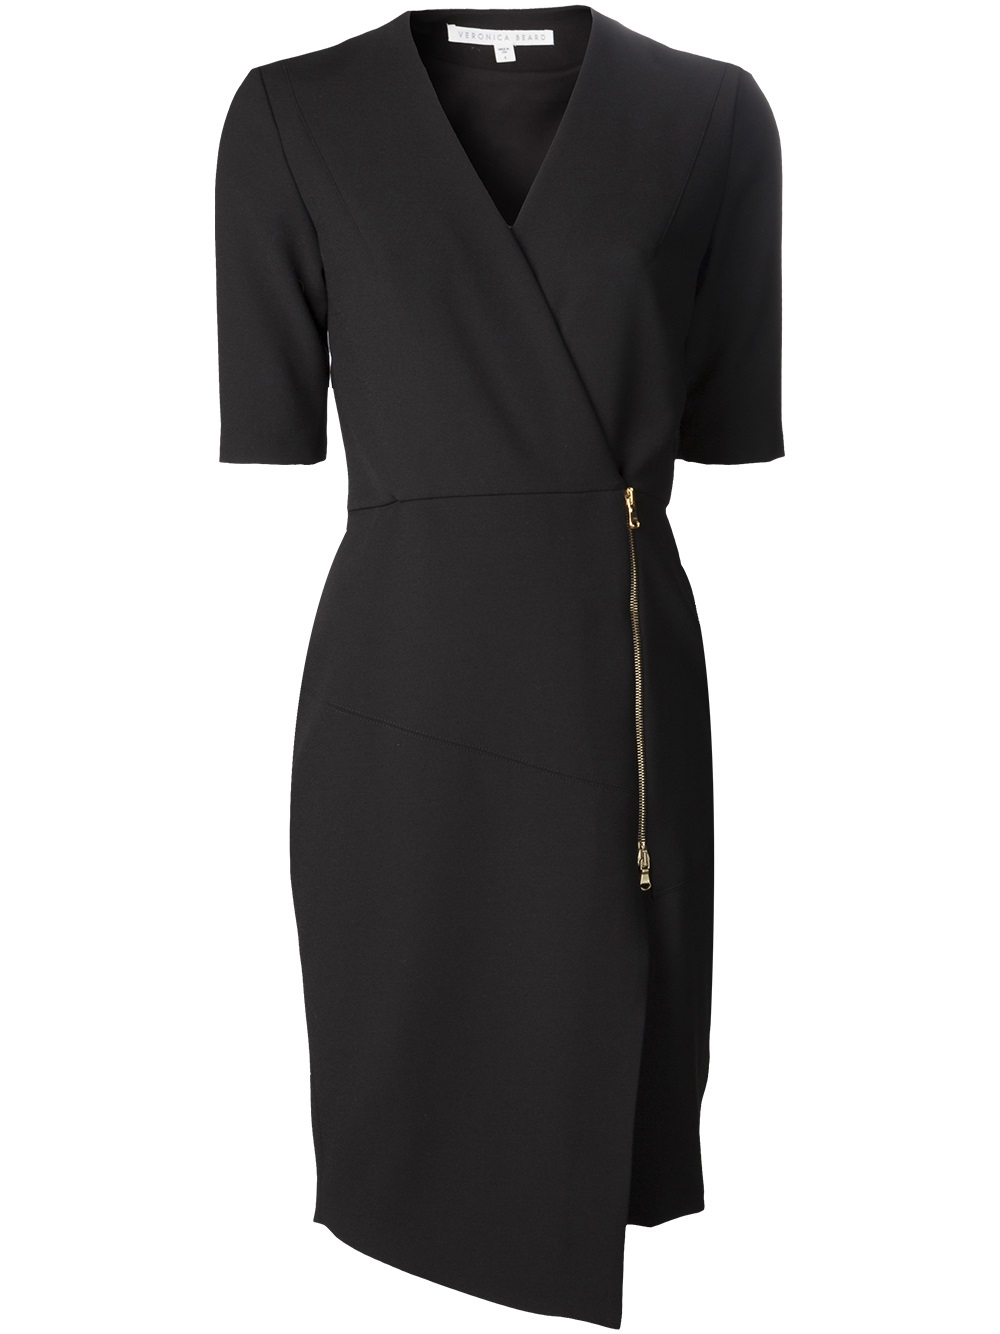 Phase eight hook up zip front dress